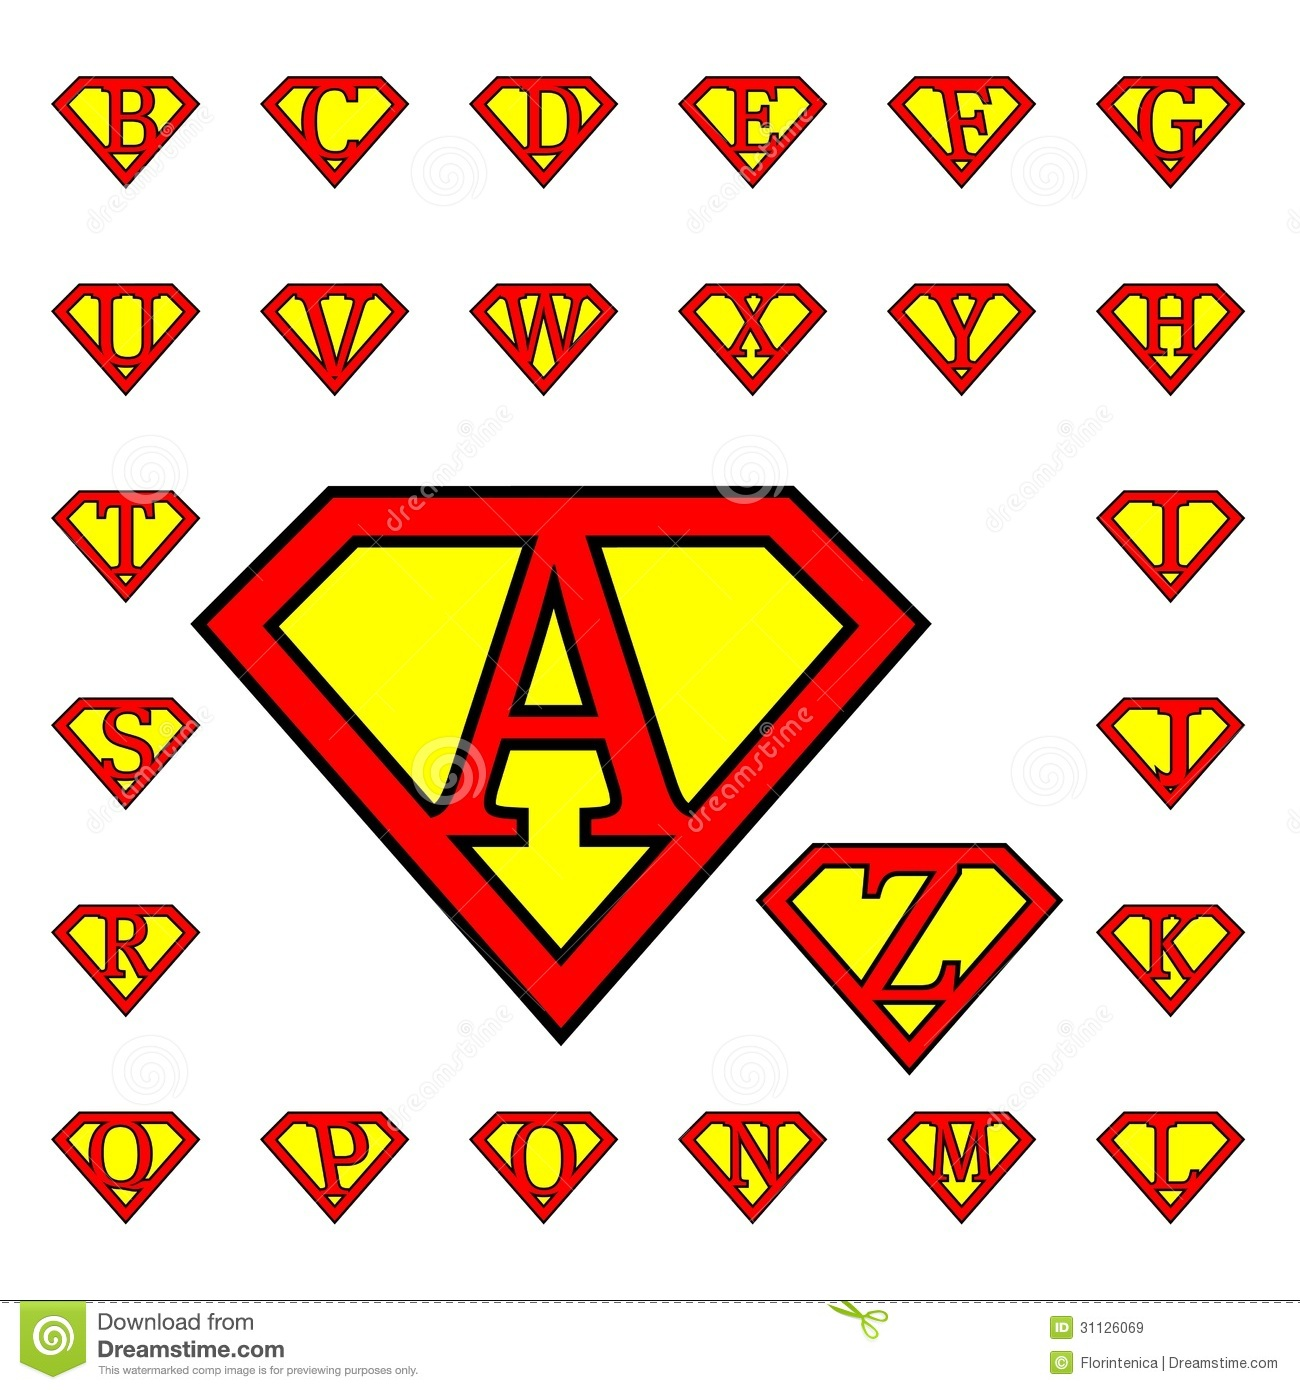 Letters stock vector illustration of t drawing print 31126069 drawings representing letters in superman style altavistaventures Images